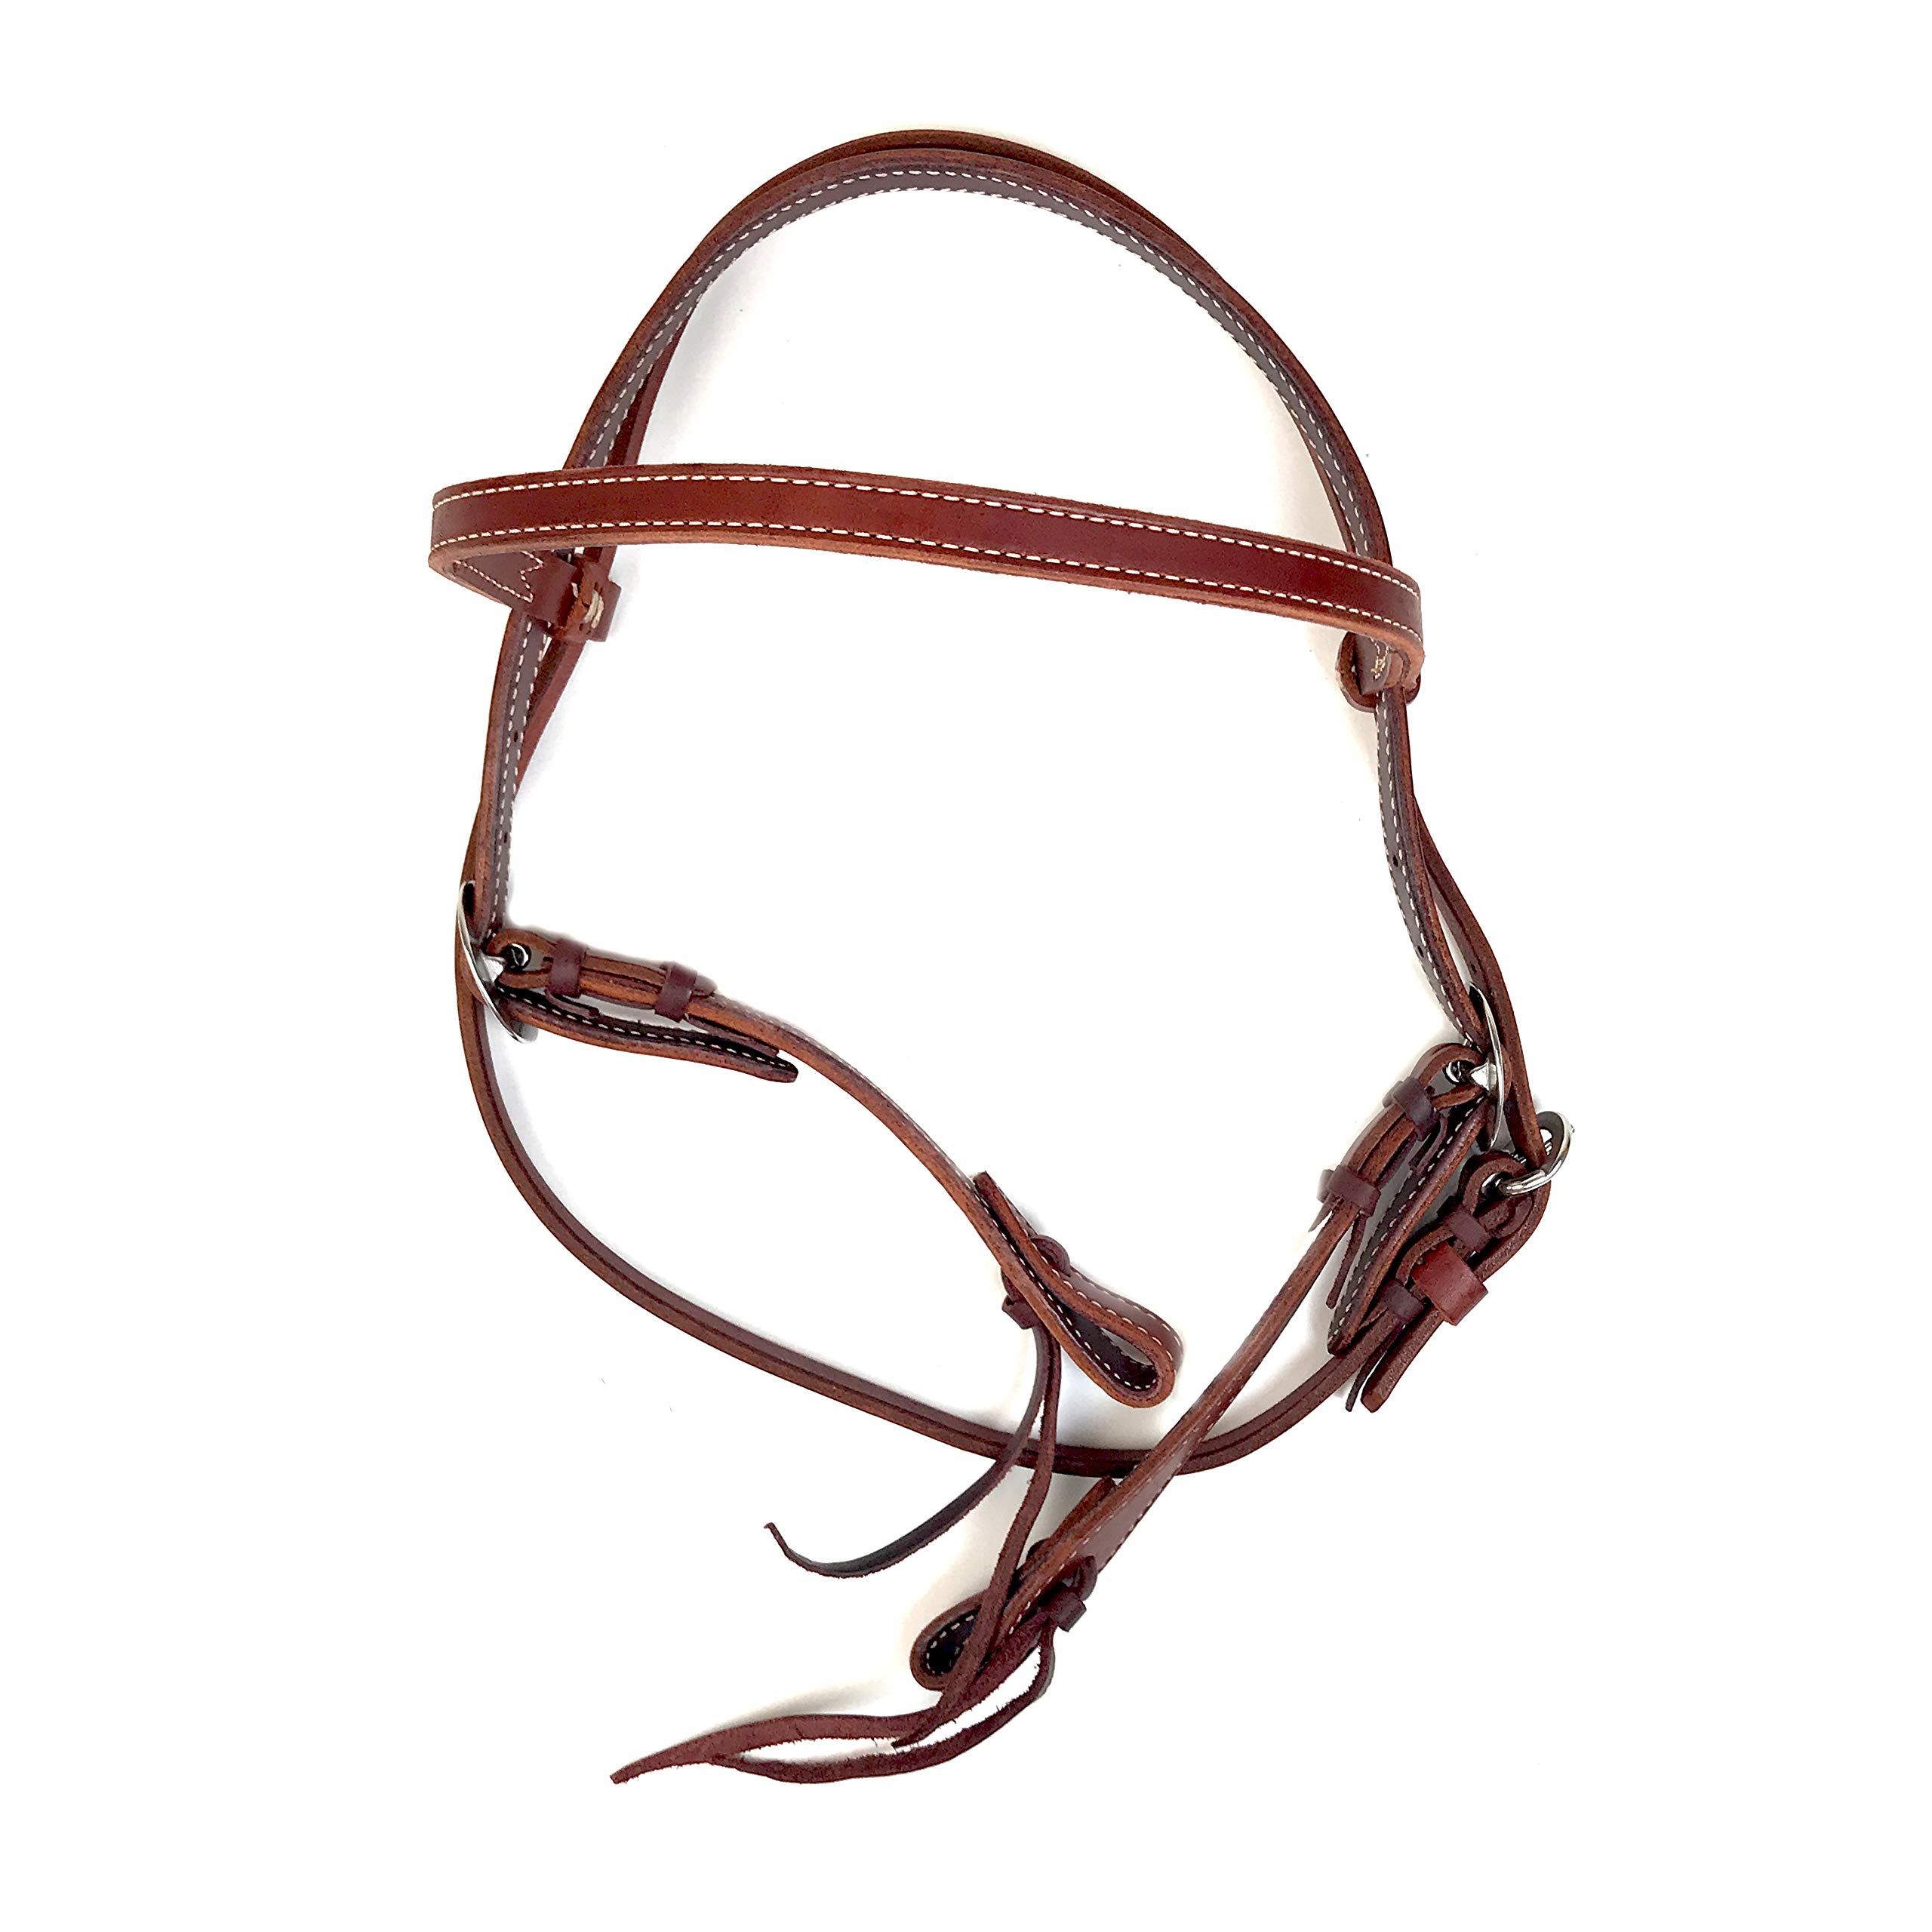 Alamo Saddlery LLC Rancher Supply- ' Elite Brow Band Headstall'